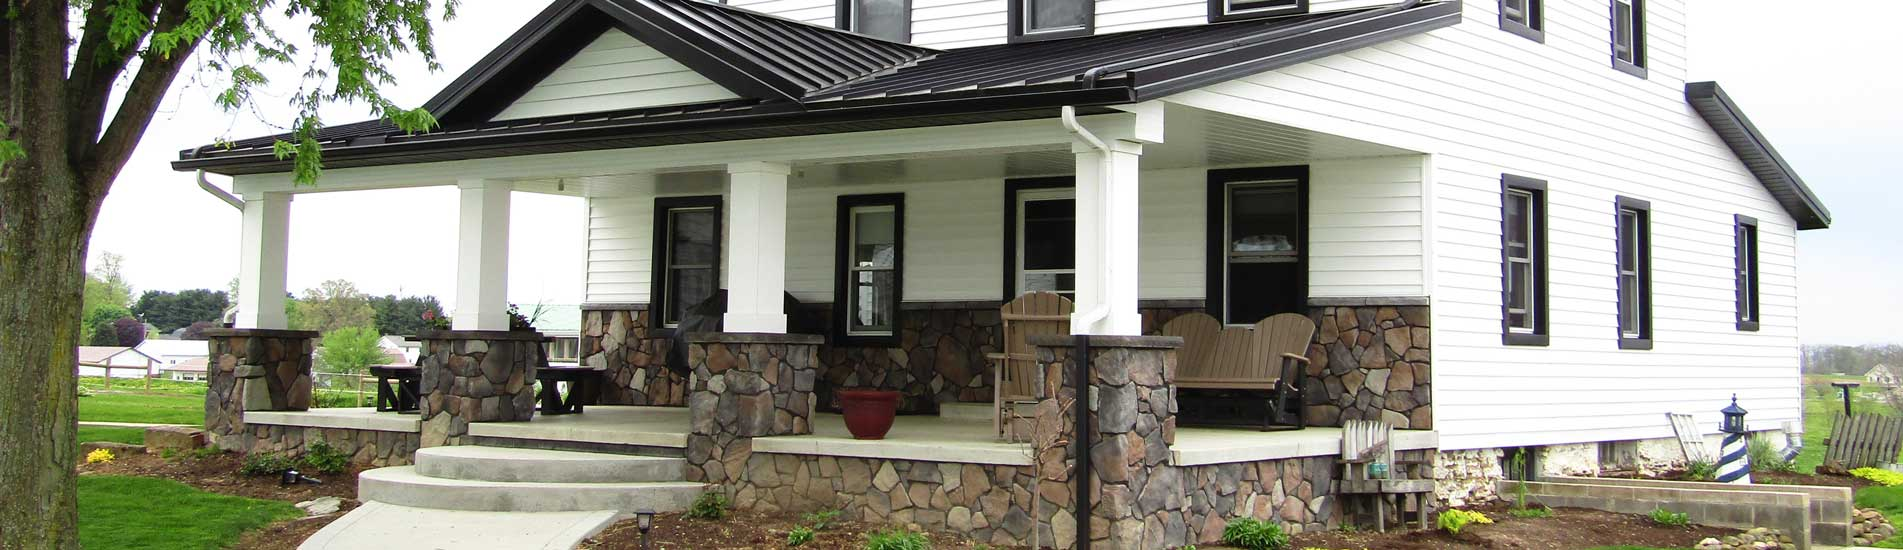 The experts in home exteriors | Amish Country Builders in Ohio